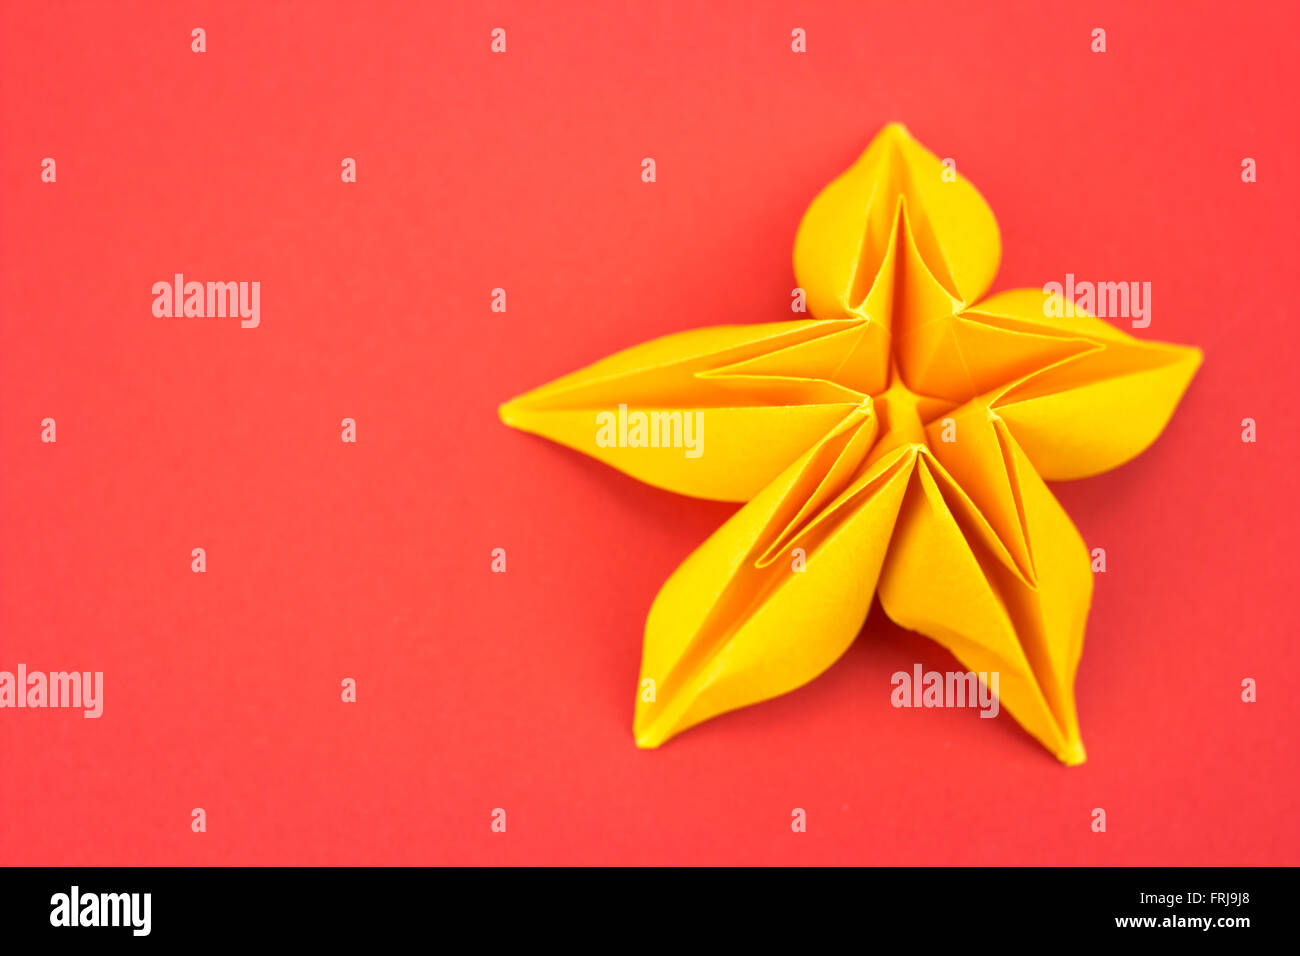 Paper Flower Background Stock Photos Origami Nut Spring Yellow On Red Image